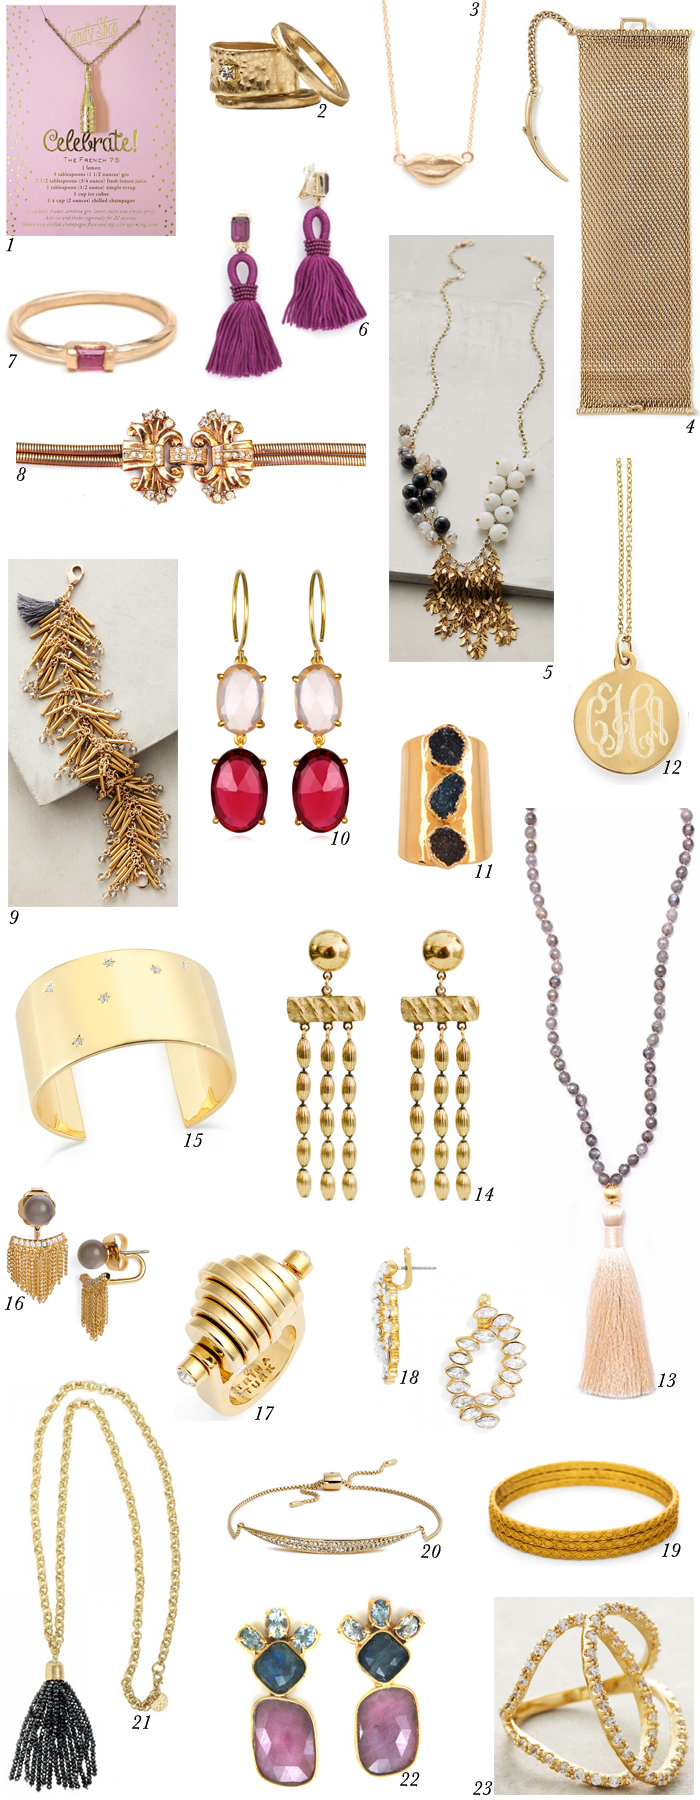 2015 holiday wish list baubles c